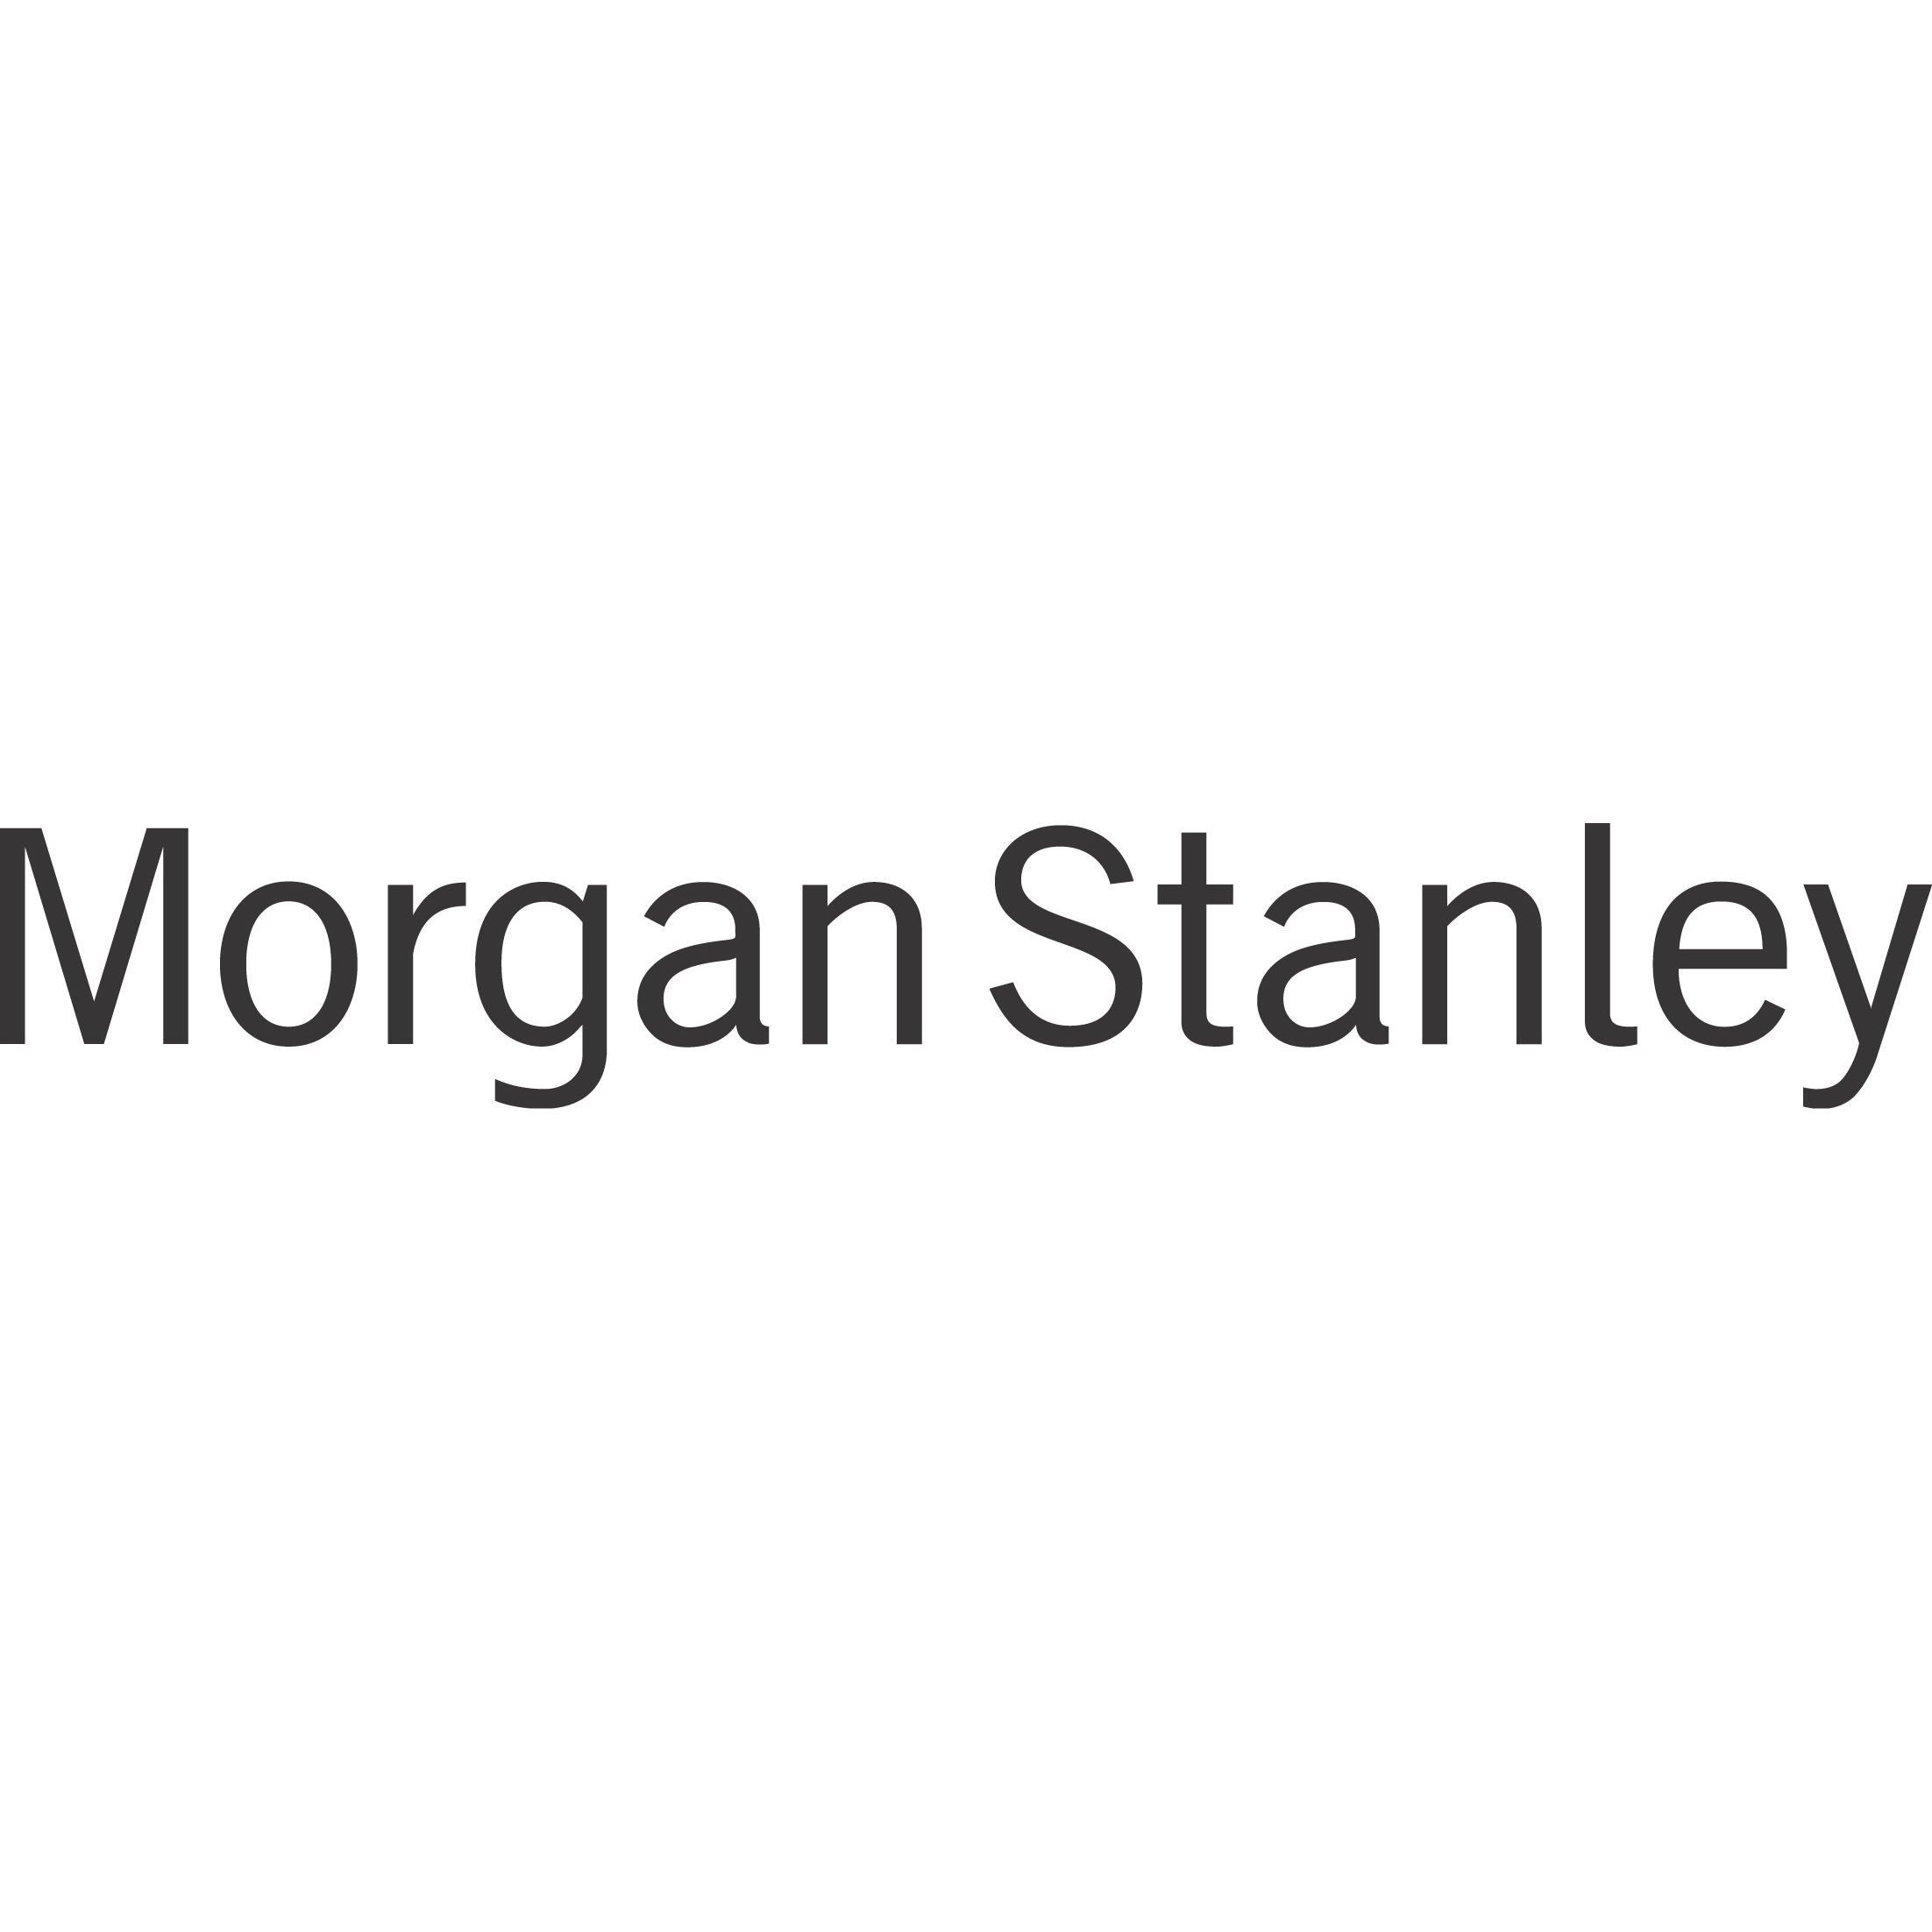 JB Borreggine - Morgan Stanley | Financial Advisor in Mount Laurel,New Jersey